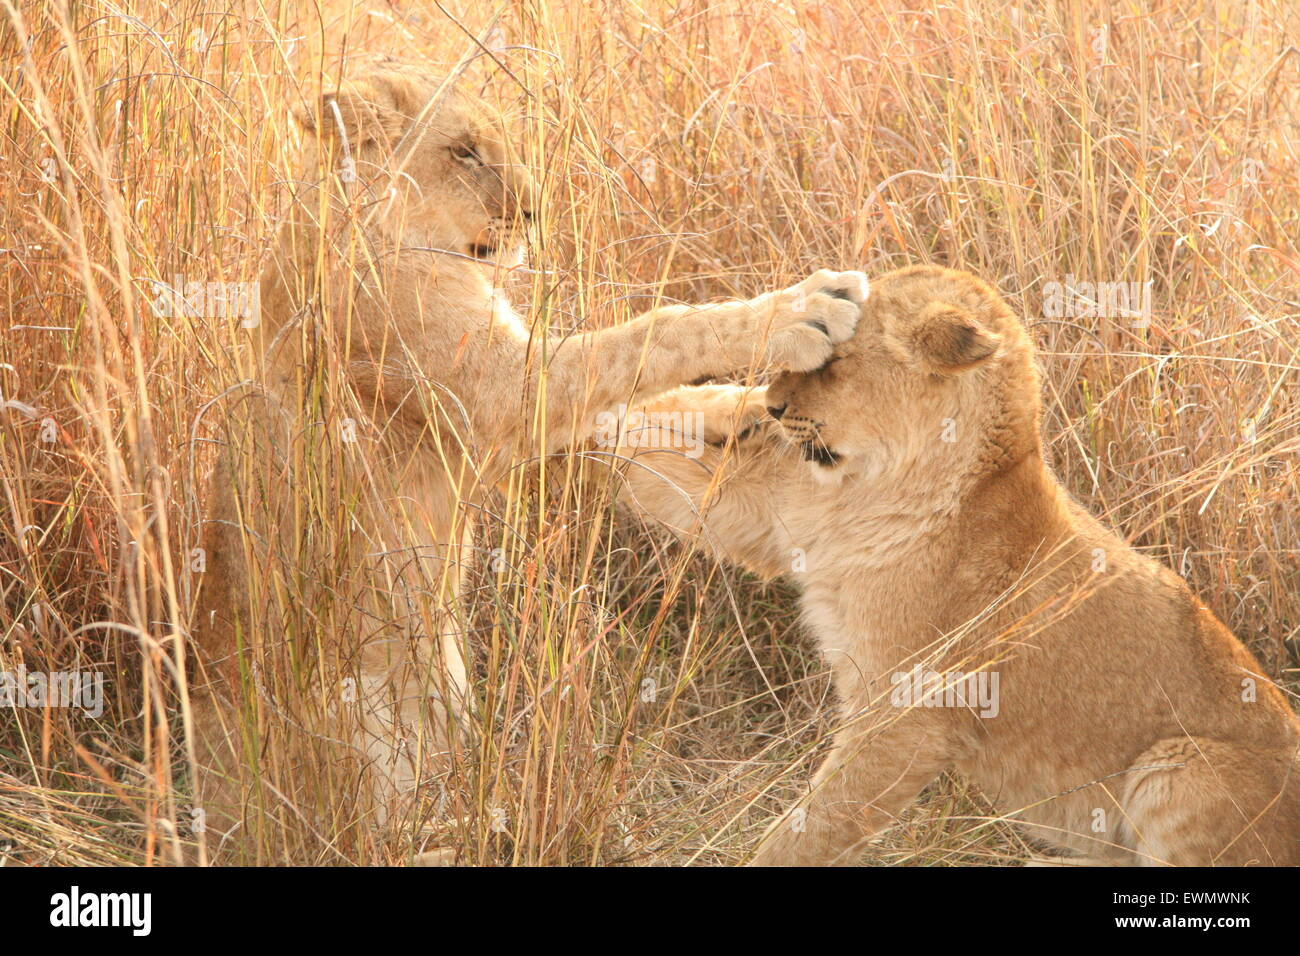 Lion Cubs Play fighting, South Africa - Stock Image